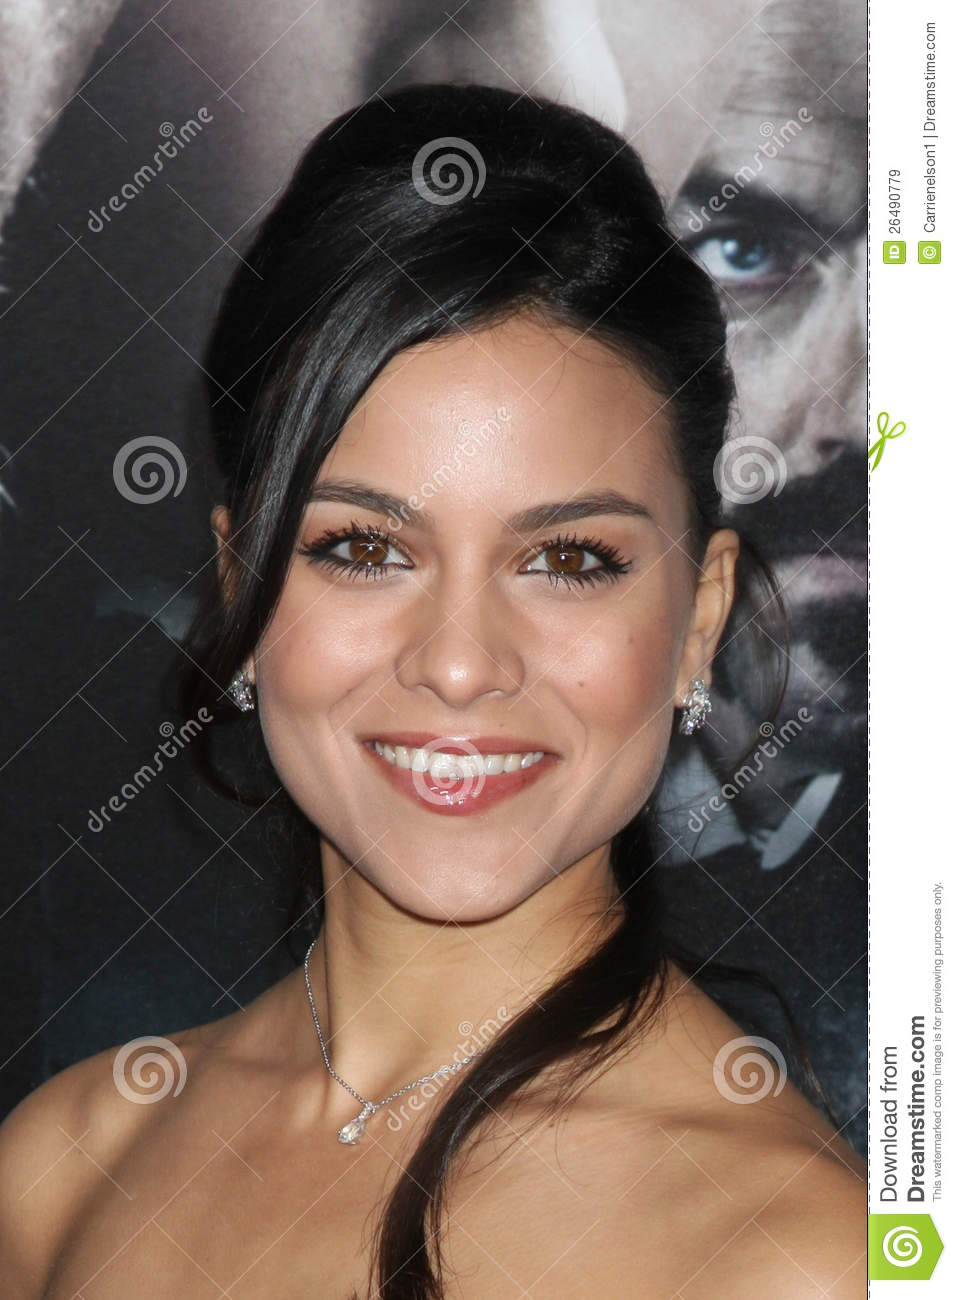 maya stojan picturesmaya stojan instagram, maya stojan, maya stojan wikipedia, maya stojan wiki, maya stojan castle, maya stojan bio, maya stojan agents of shield, maya stojan imdb, maya stojan twitter, maya stojan and brett dalton, maya stojan kinopoisk, maya stojan age, maya stojan hot, maya stojan pictures, maya stojan nudography, maya stojan measurements, maya stojan grey's anatomy, maya stojan shield, maya stojan bikini